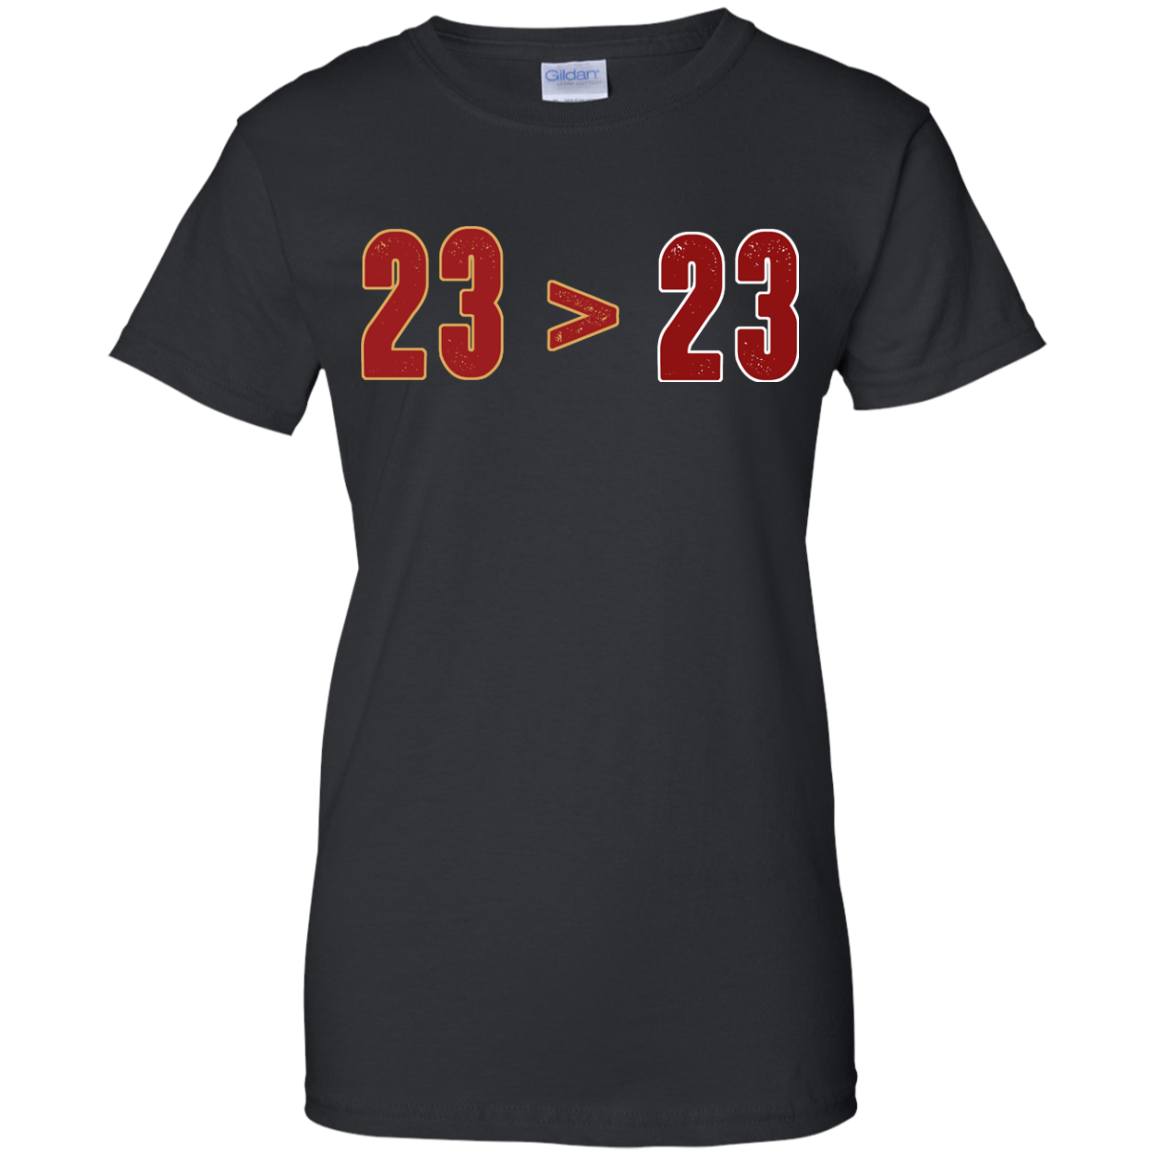 new products 2b0a7 72f52 23 Greater than 23 T-shirt, LeBron Greater Than Jordan T-shirt,Tank top &  Hoodies